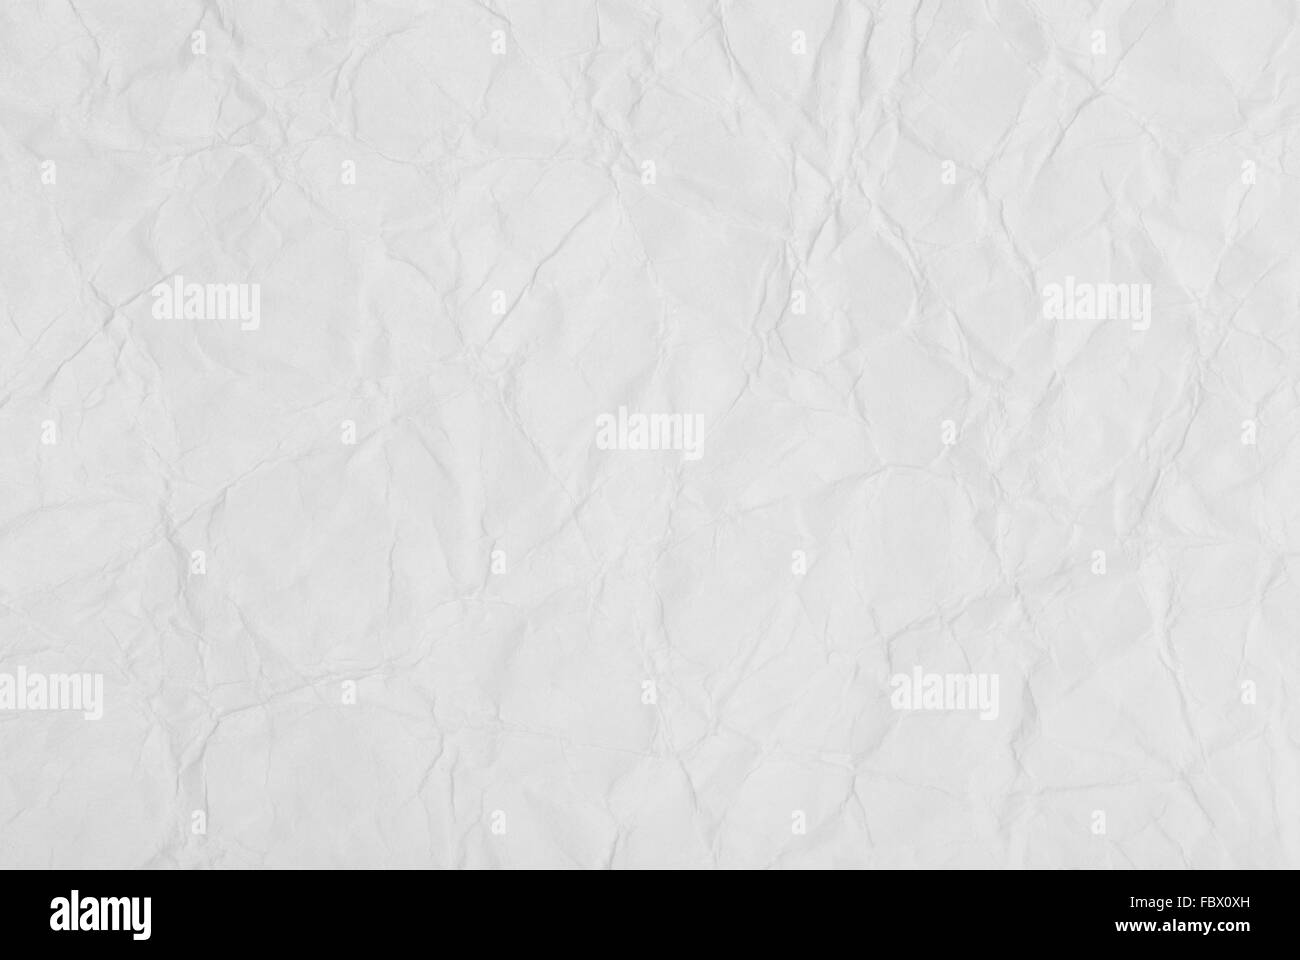 background of crumpled paper texture - Stock Image